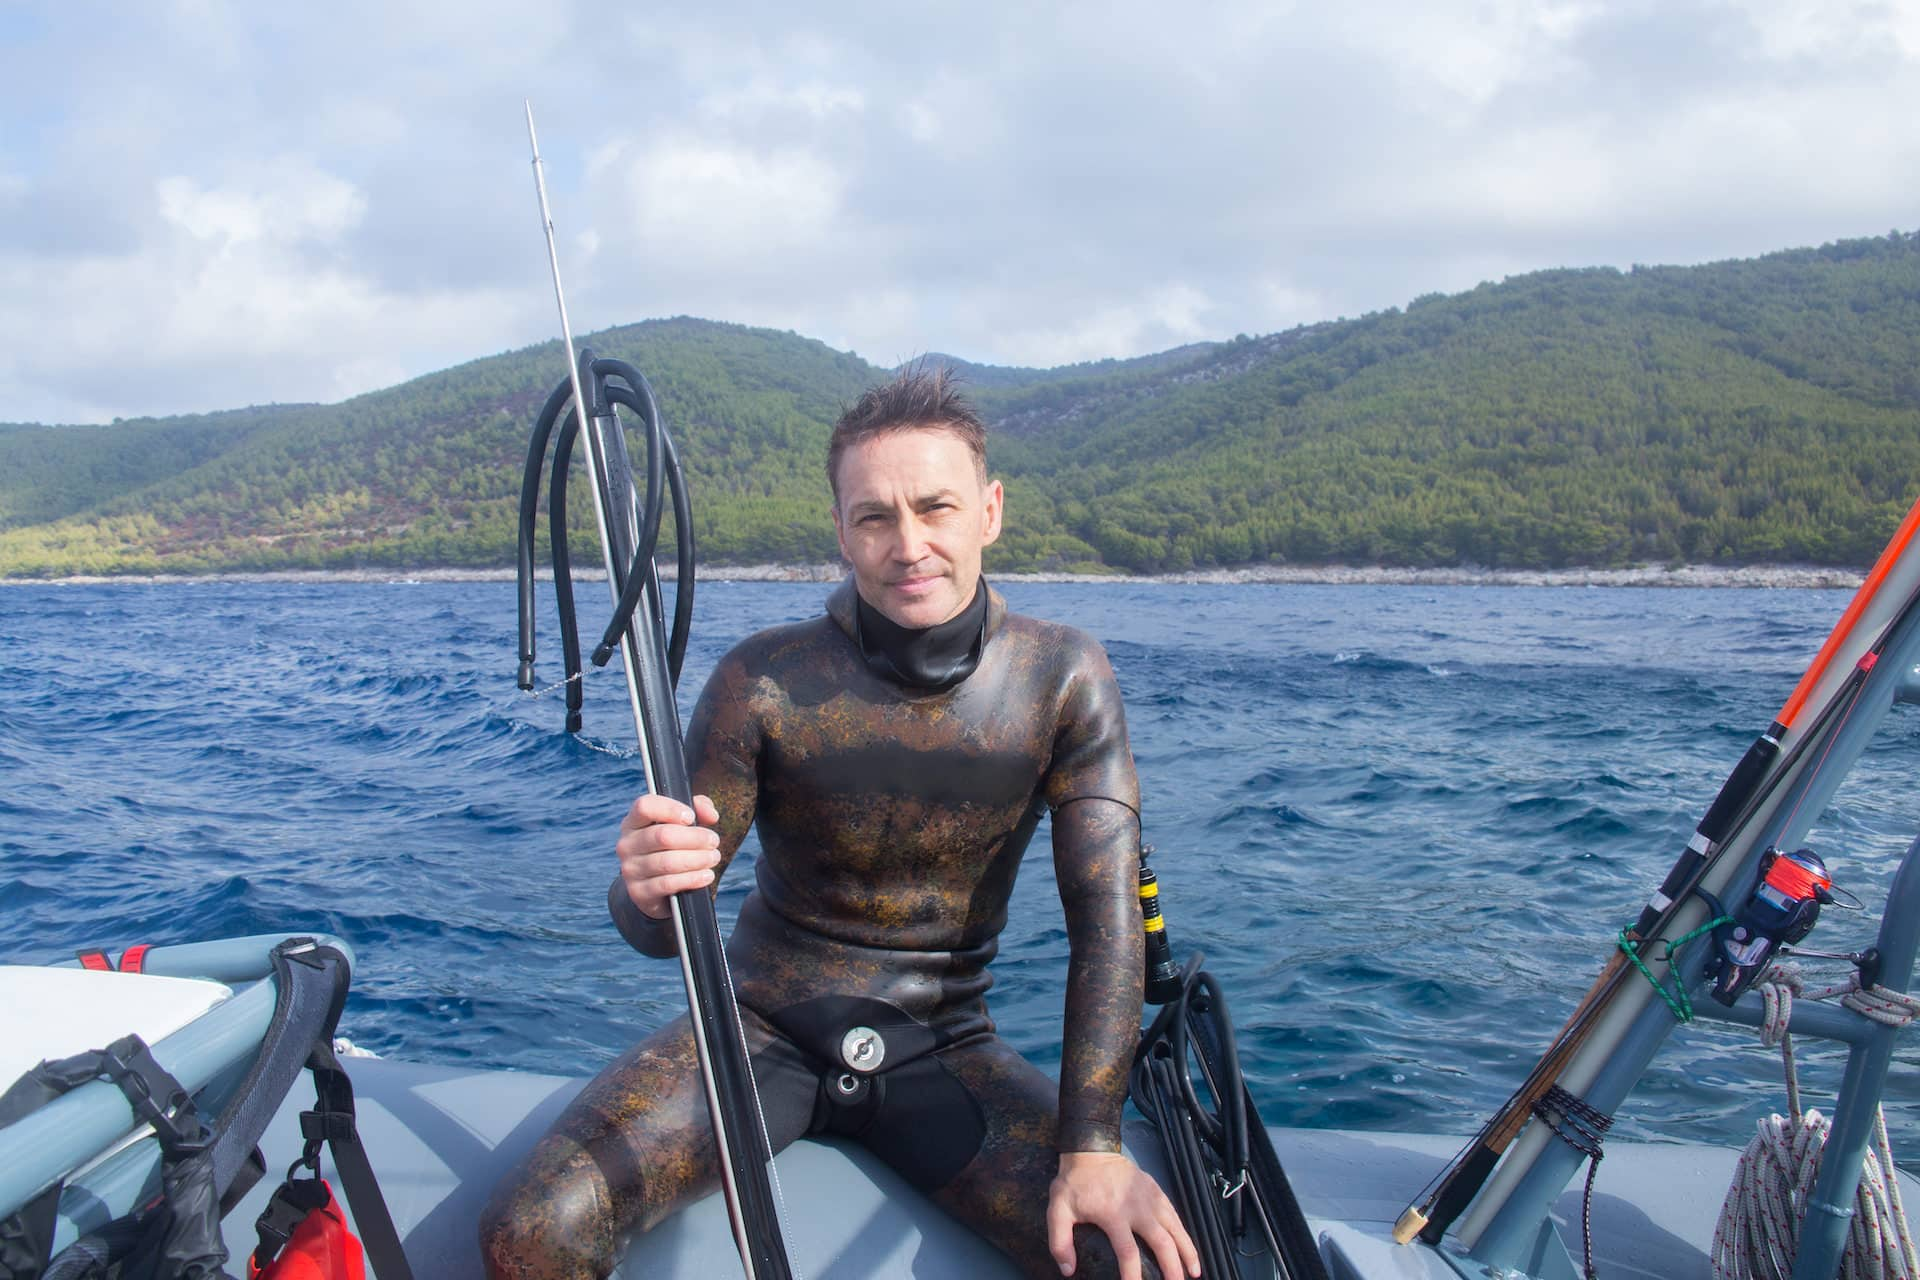 being a responsible spearfisherman